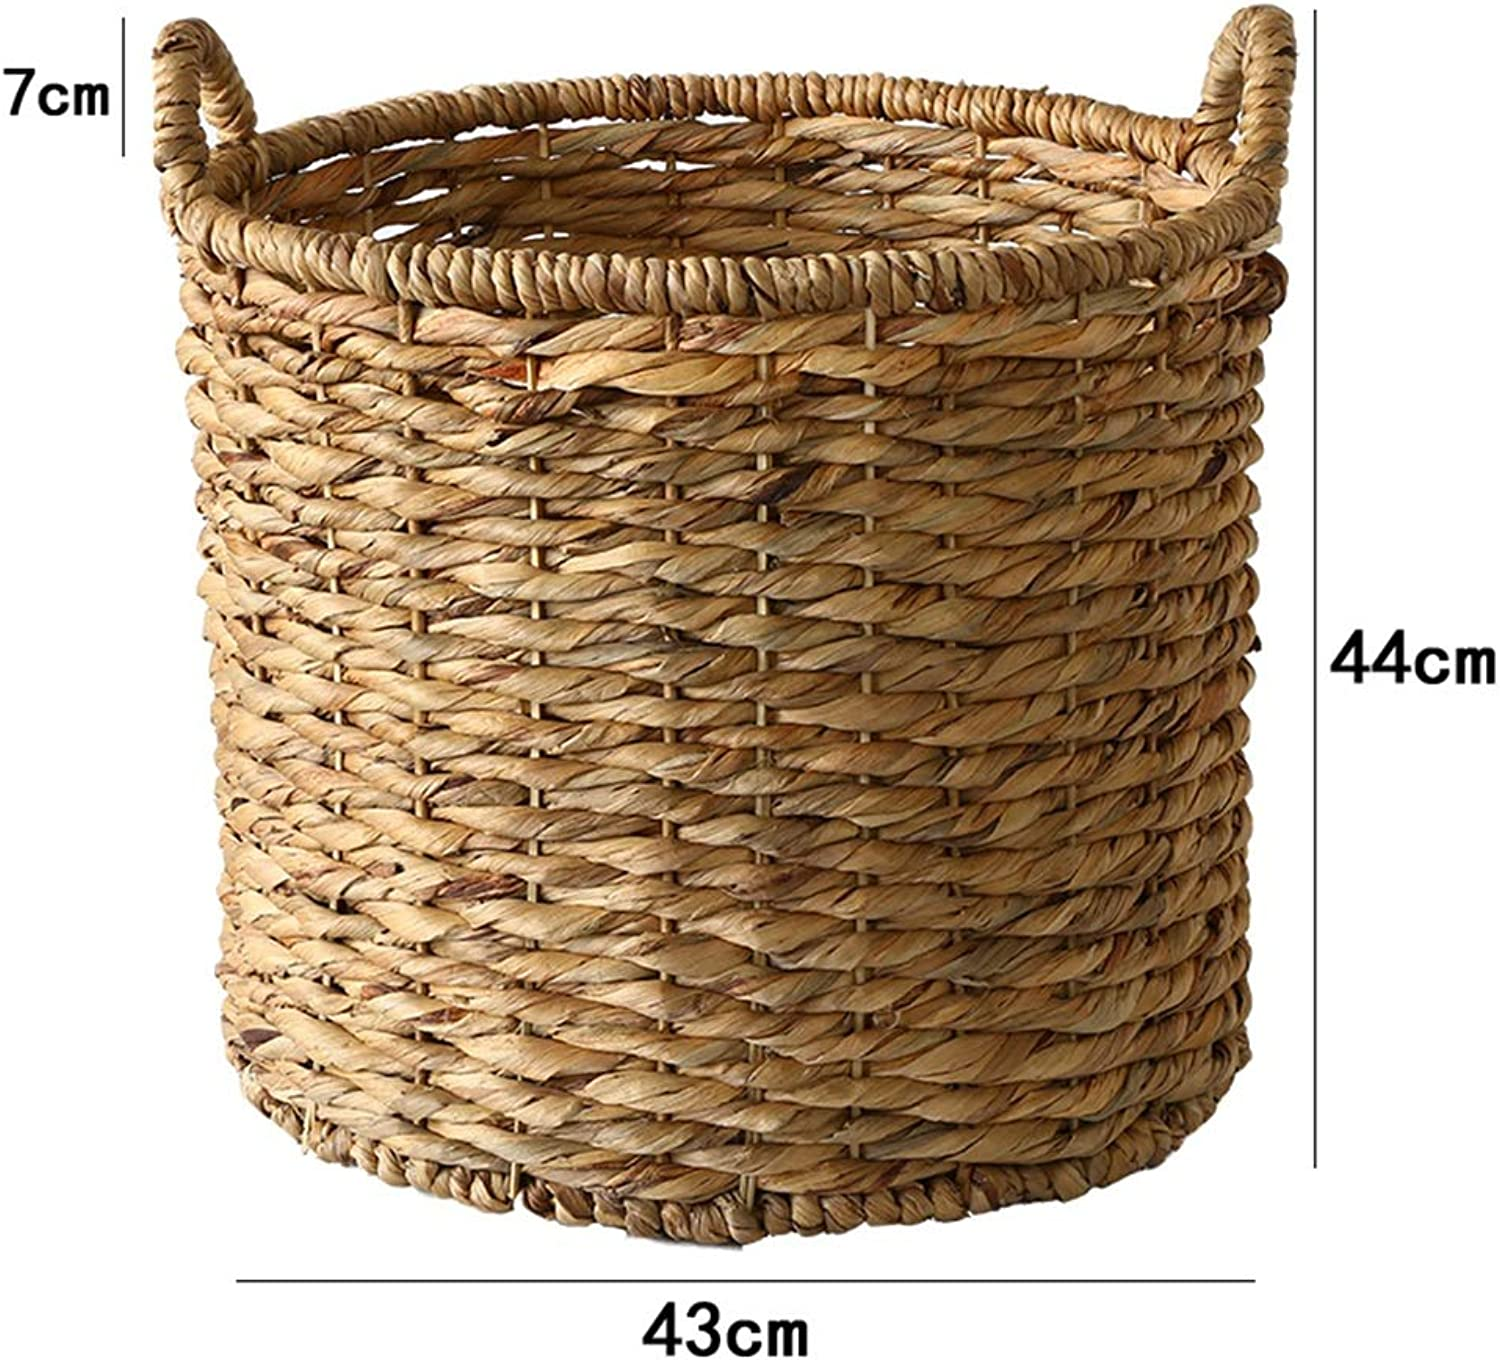 ZHANGQIANG Storage Basket Laundry Basket Rattan Laundry Hamper Multifunctional with Lid Hollow Household Storage Basket Wrought (color   Ordinary Style, Size   Large)